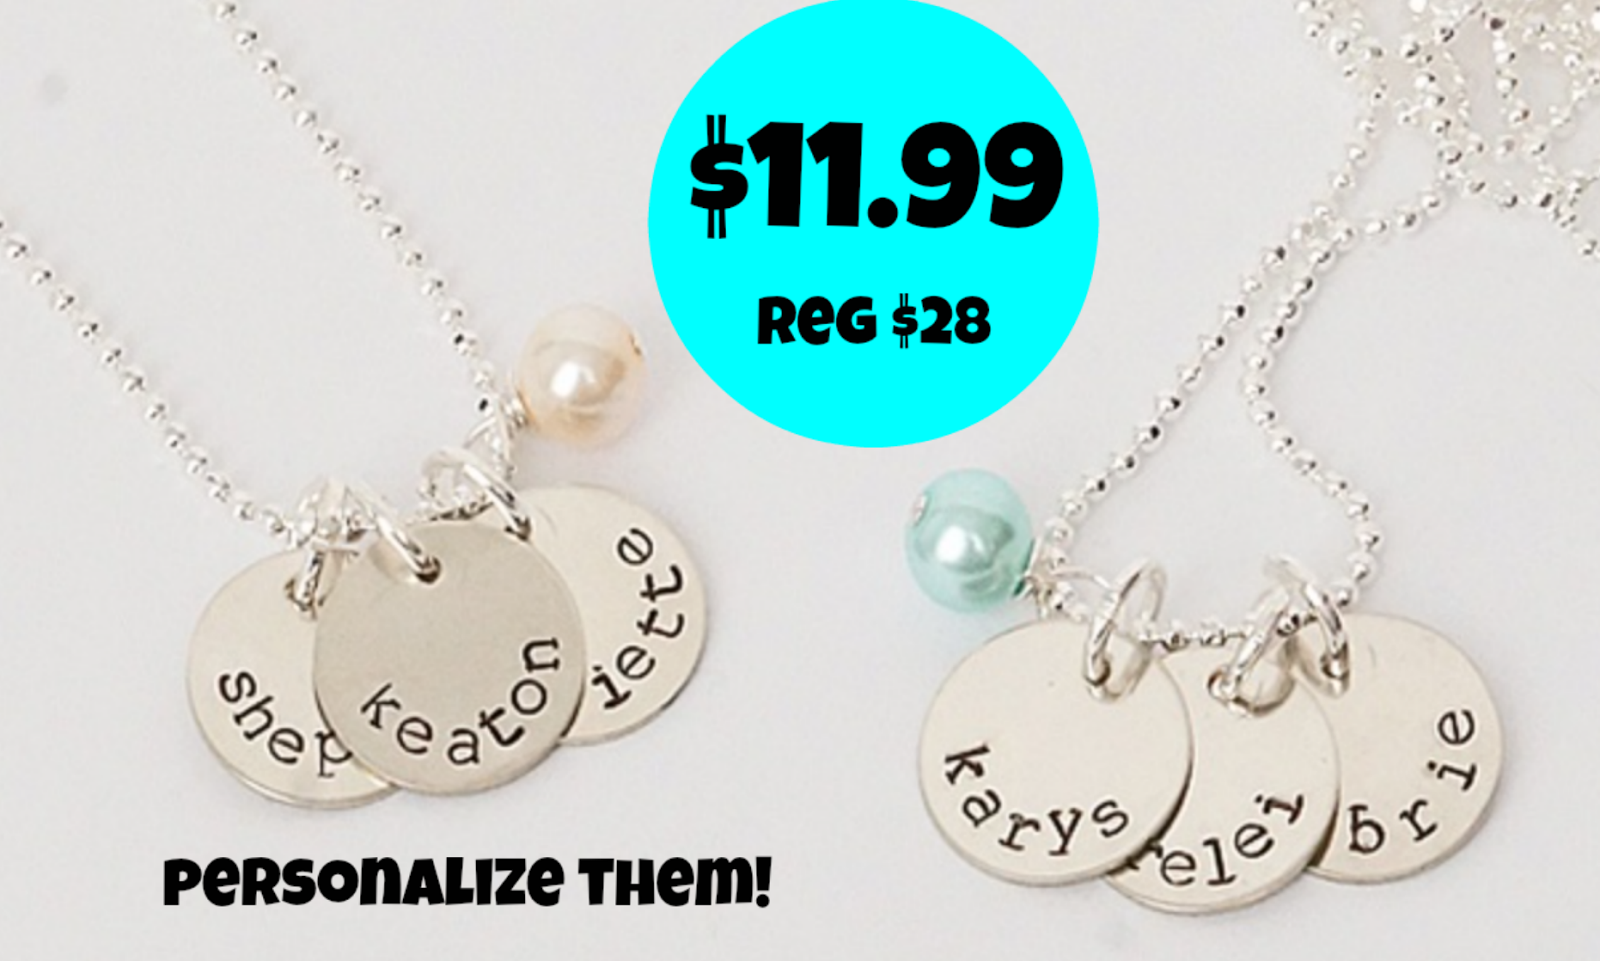 http://www.thebinderladies.com/2015/03/groopdealz-tiny-blessings-personalized.html#.VPXx8ULduyM